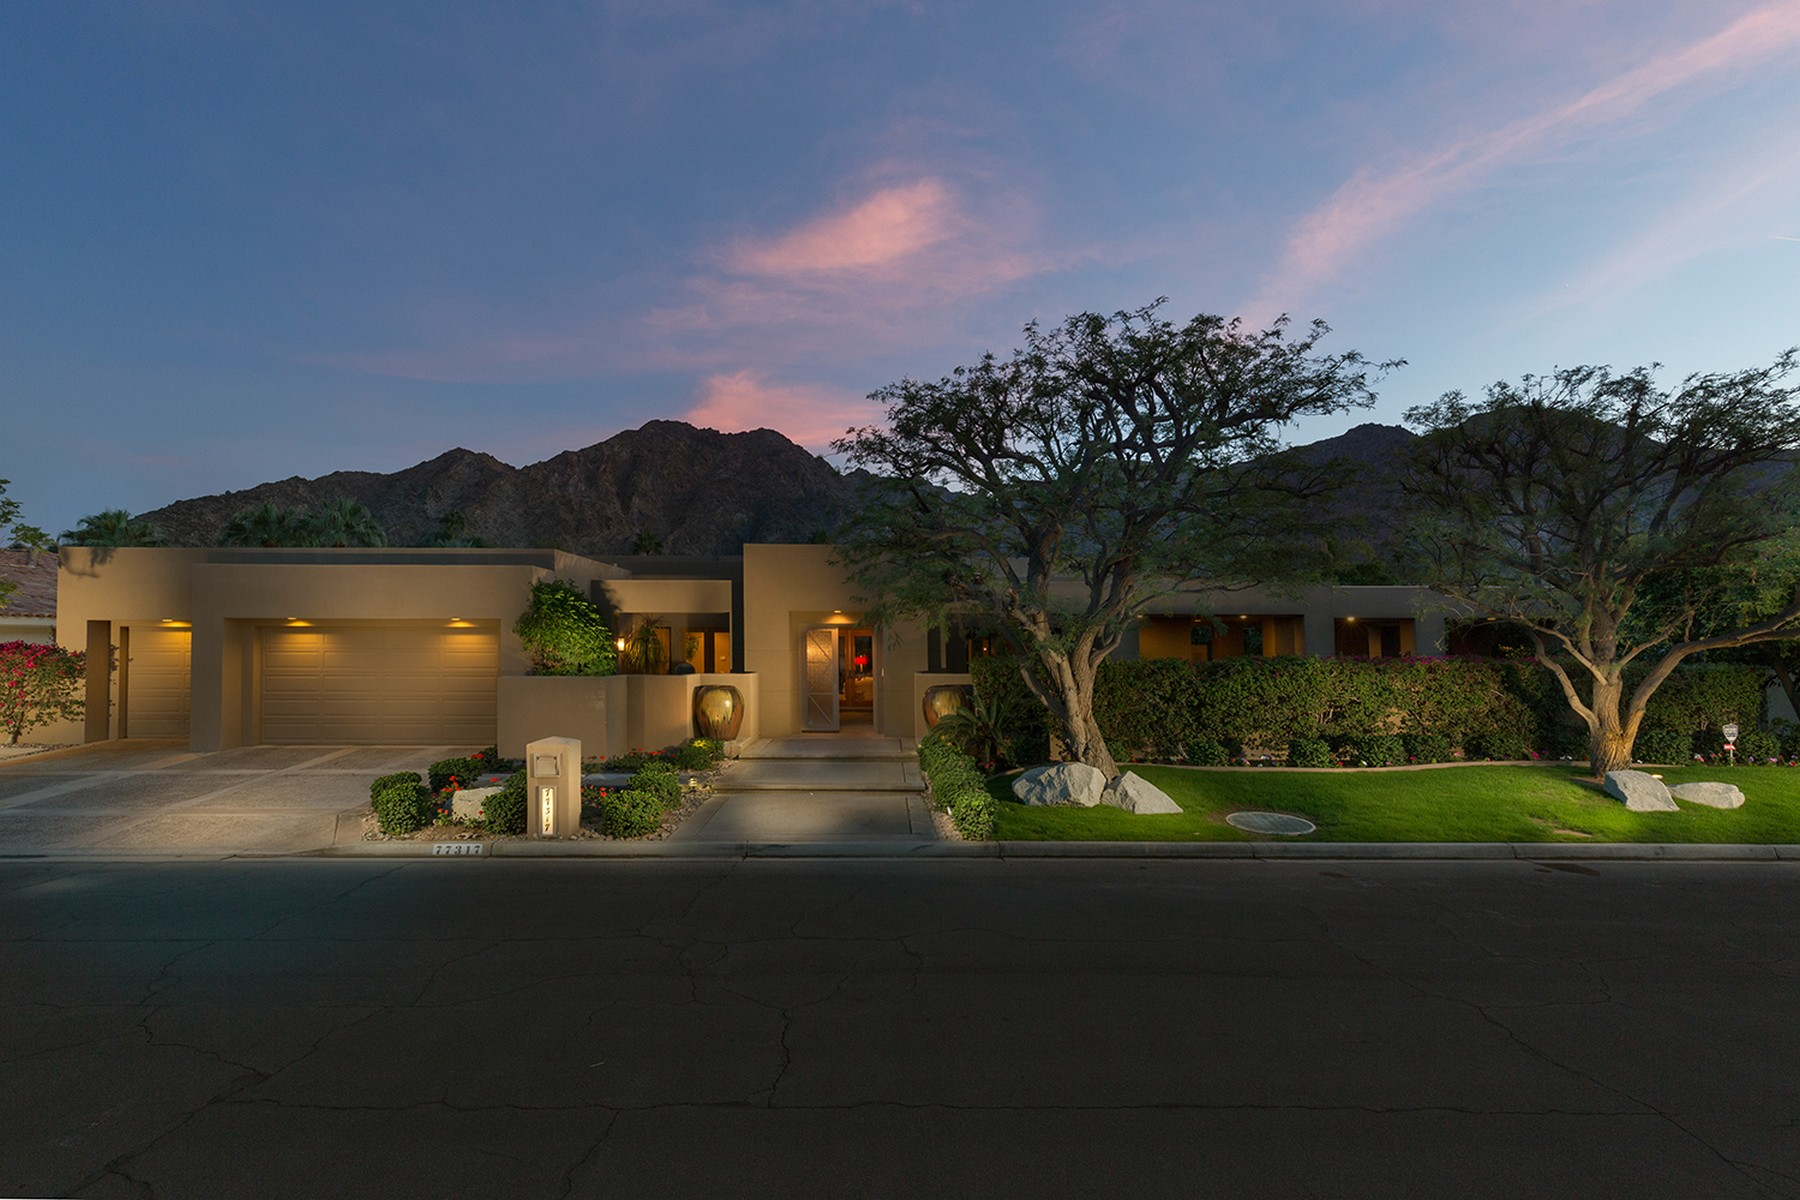 Single Family Home for Sale at Gated community of Brava Well known for its desirable Tuscan Architectural des 77317 Chocolate Mountain Road Indian Wells, 92210 United States